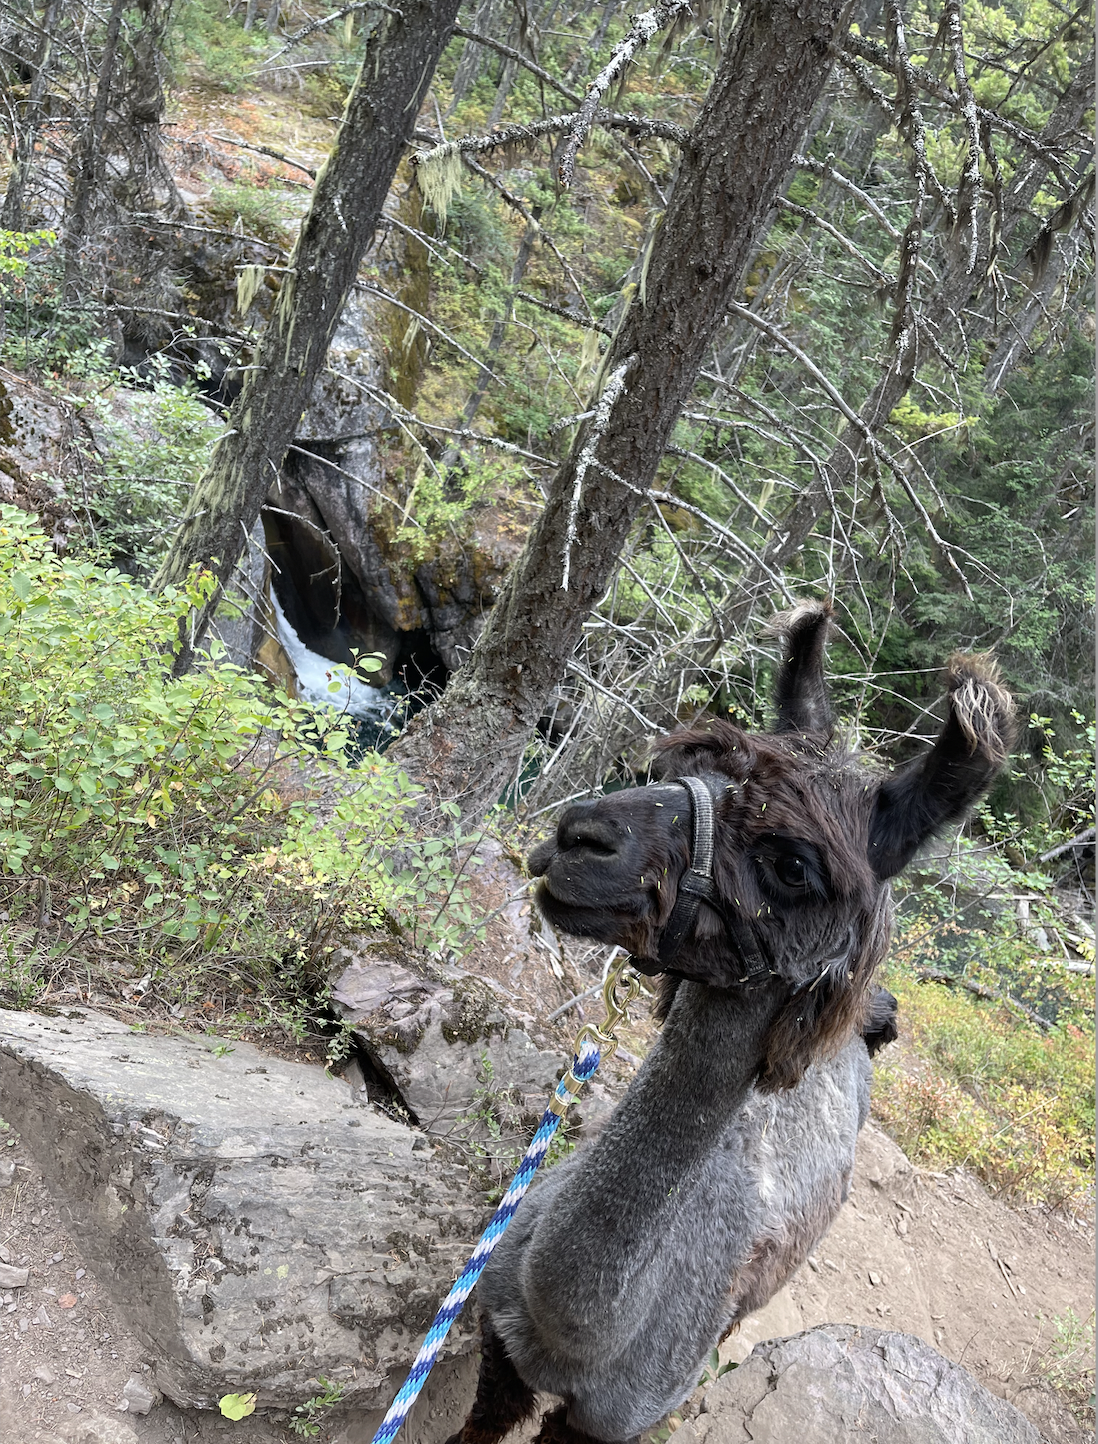 Montana Travel Guide - We rounded up our entire hiking and adventure trip to Glacier National Park & Big Sky Country with this helpful planning post!